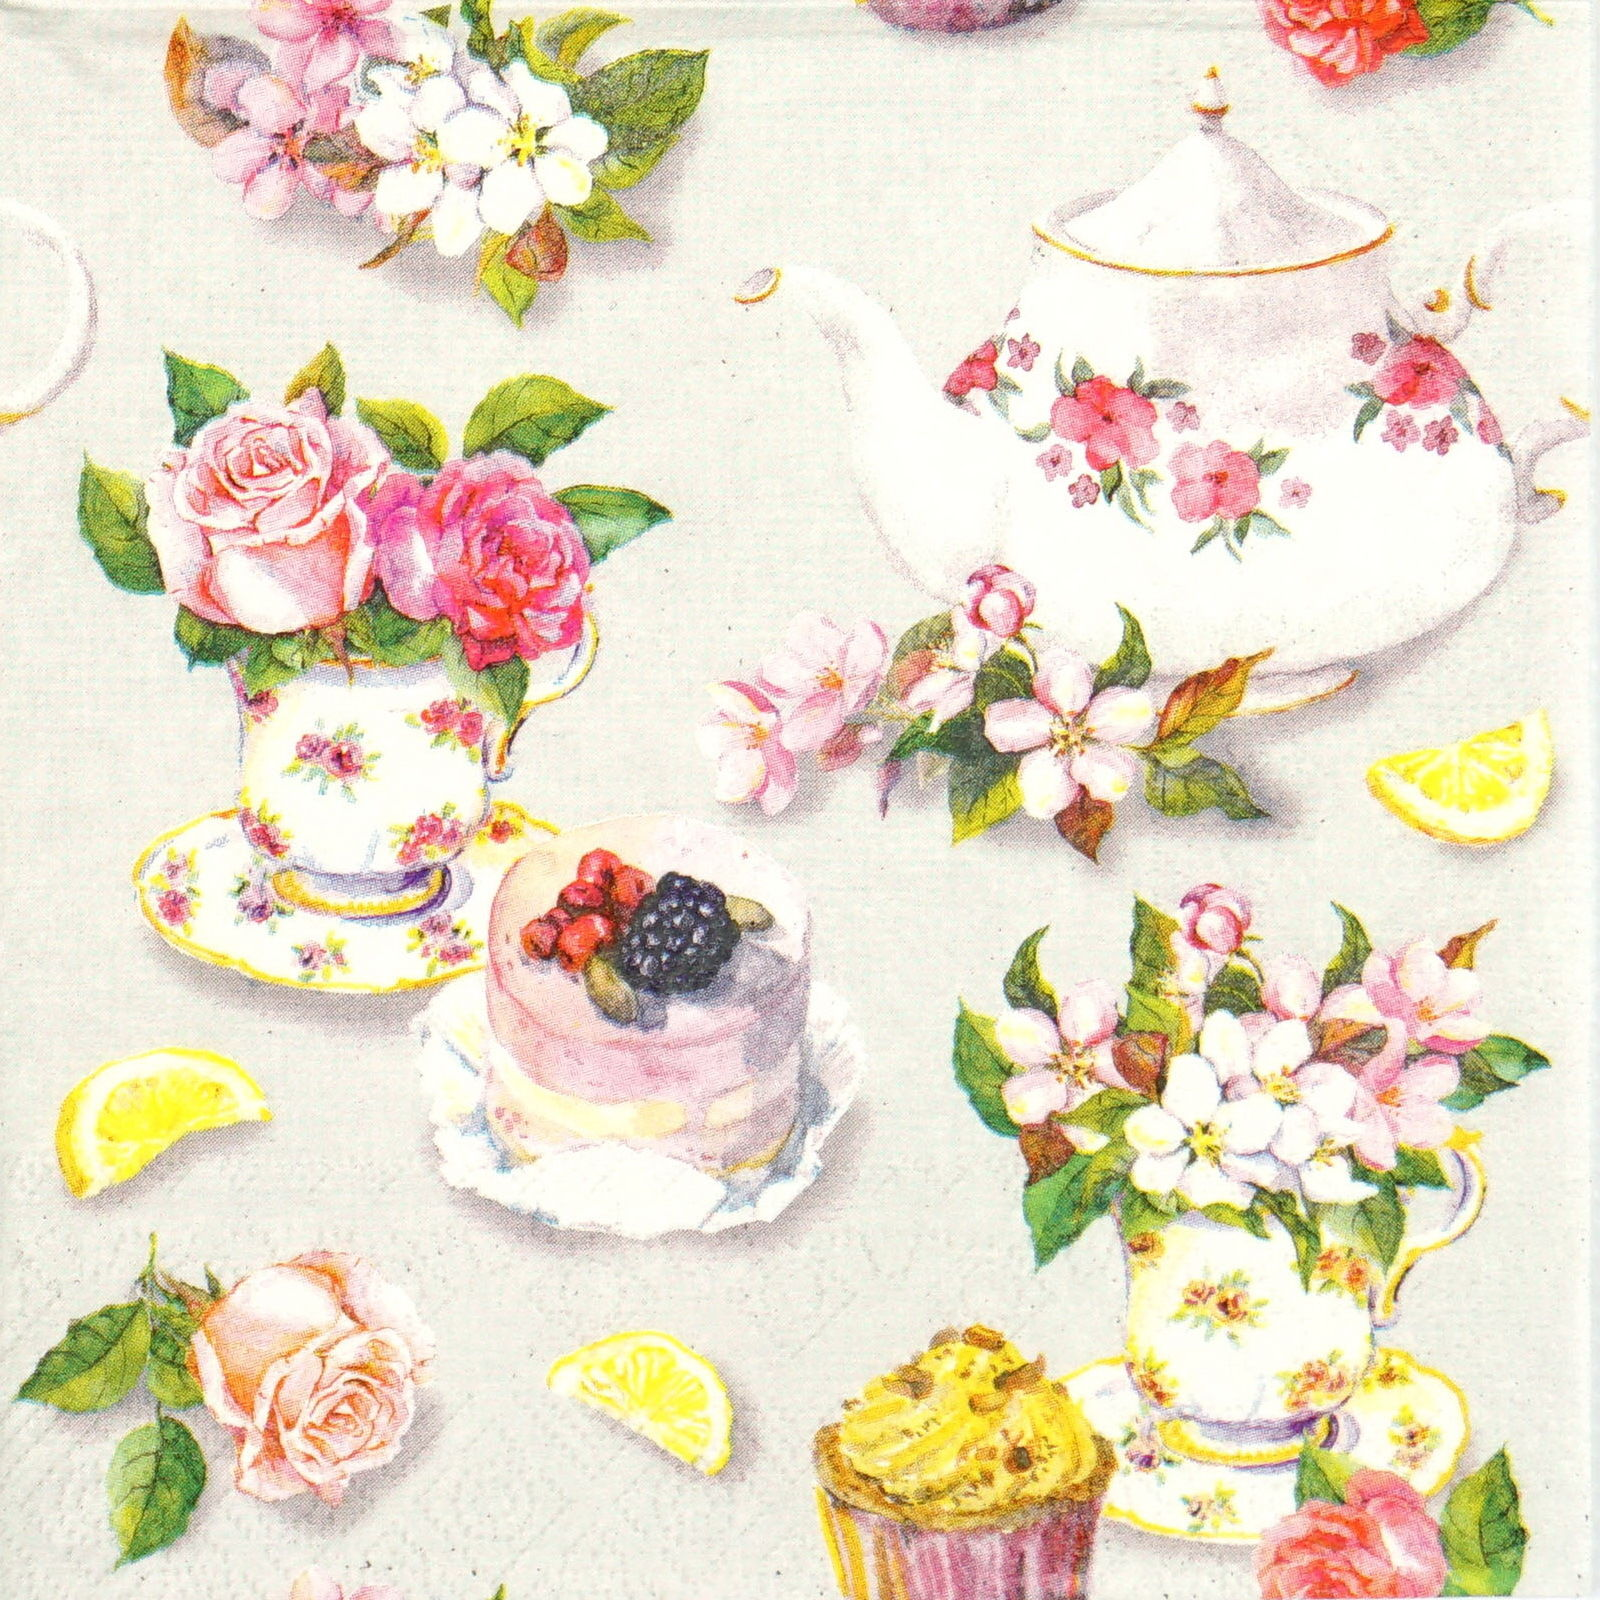 4x Paper Napkins for Decoupage Decopatch Craft One in Million